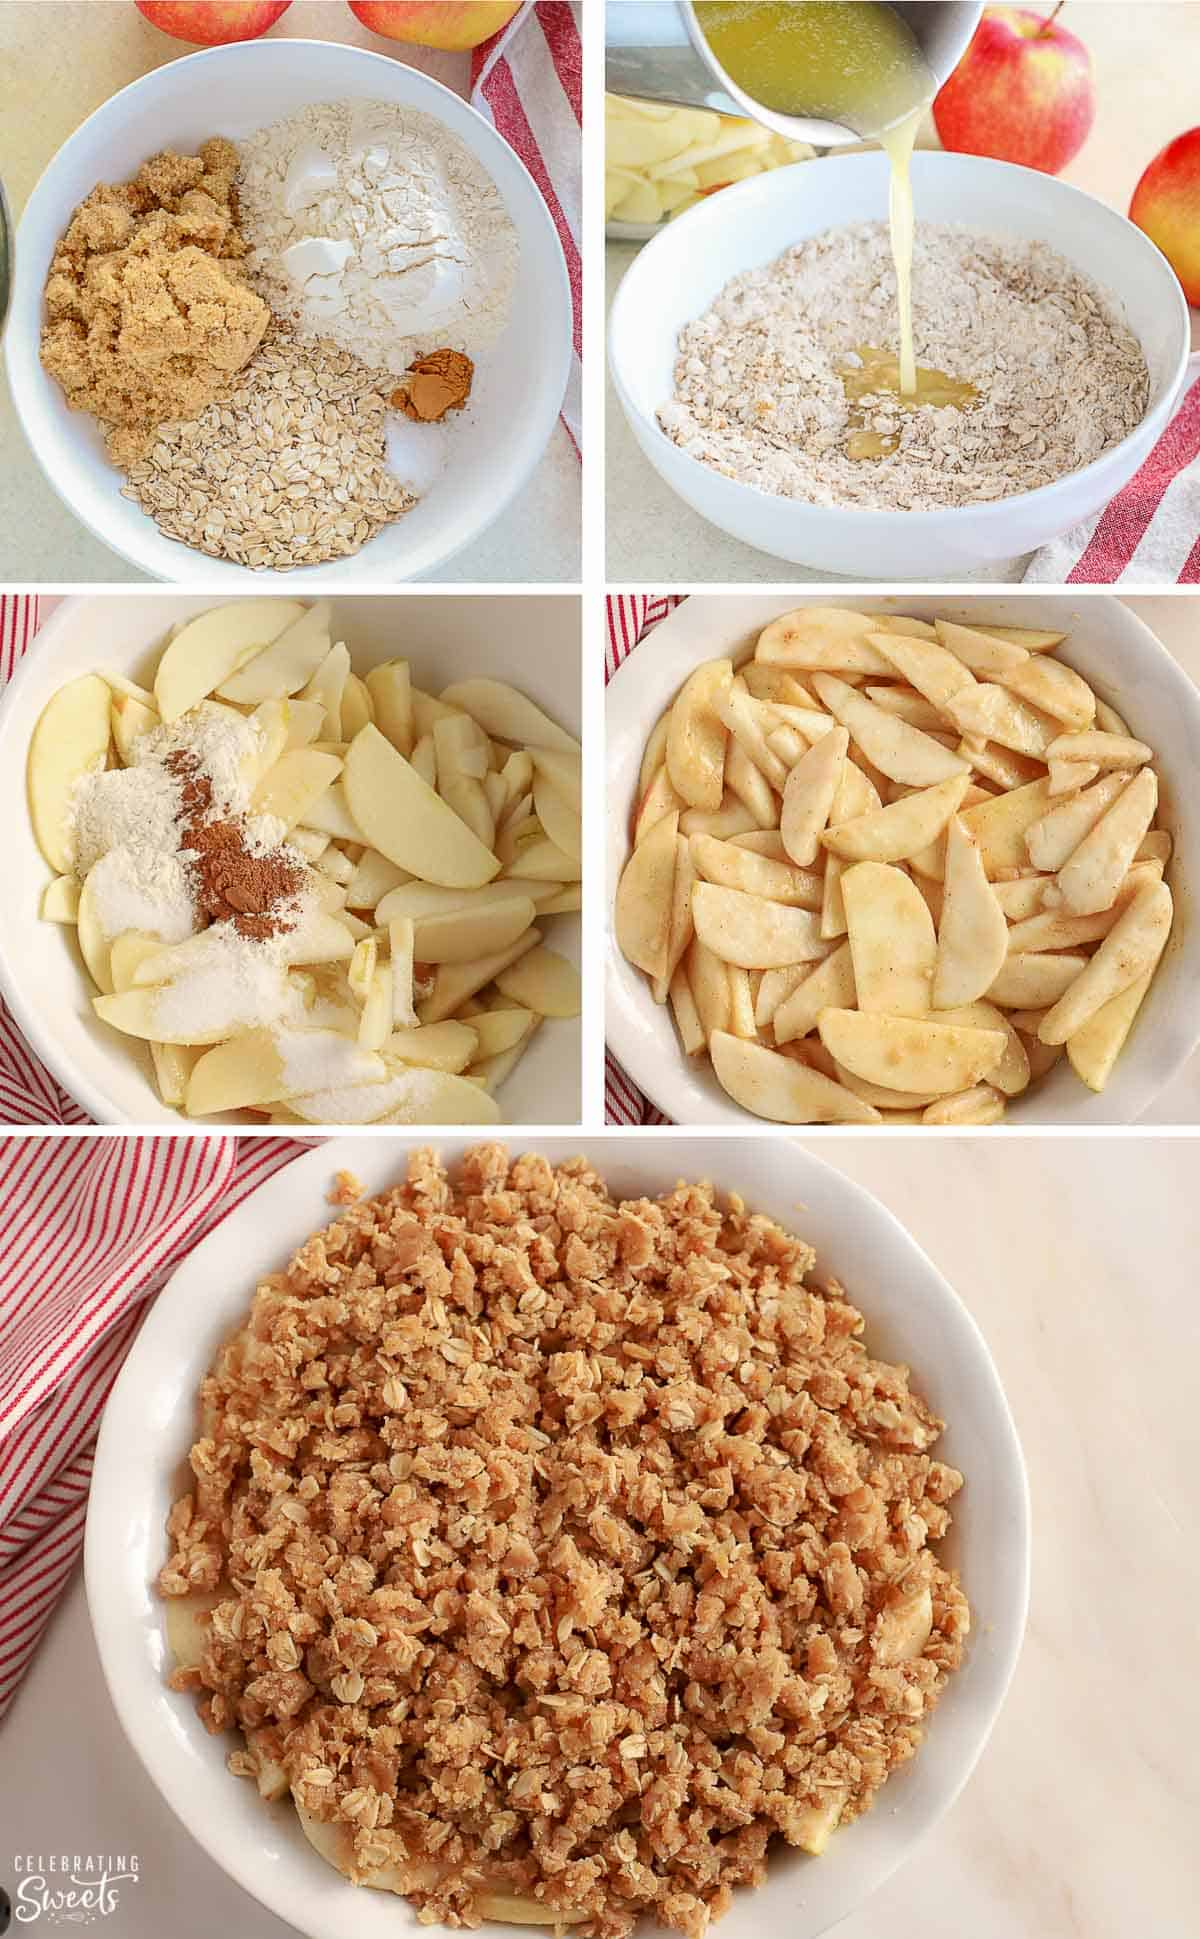 Step by step photos of how to make an apple pear crisp.